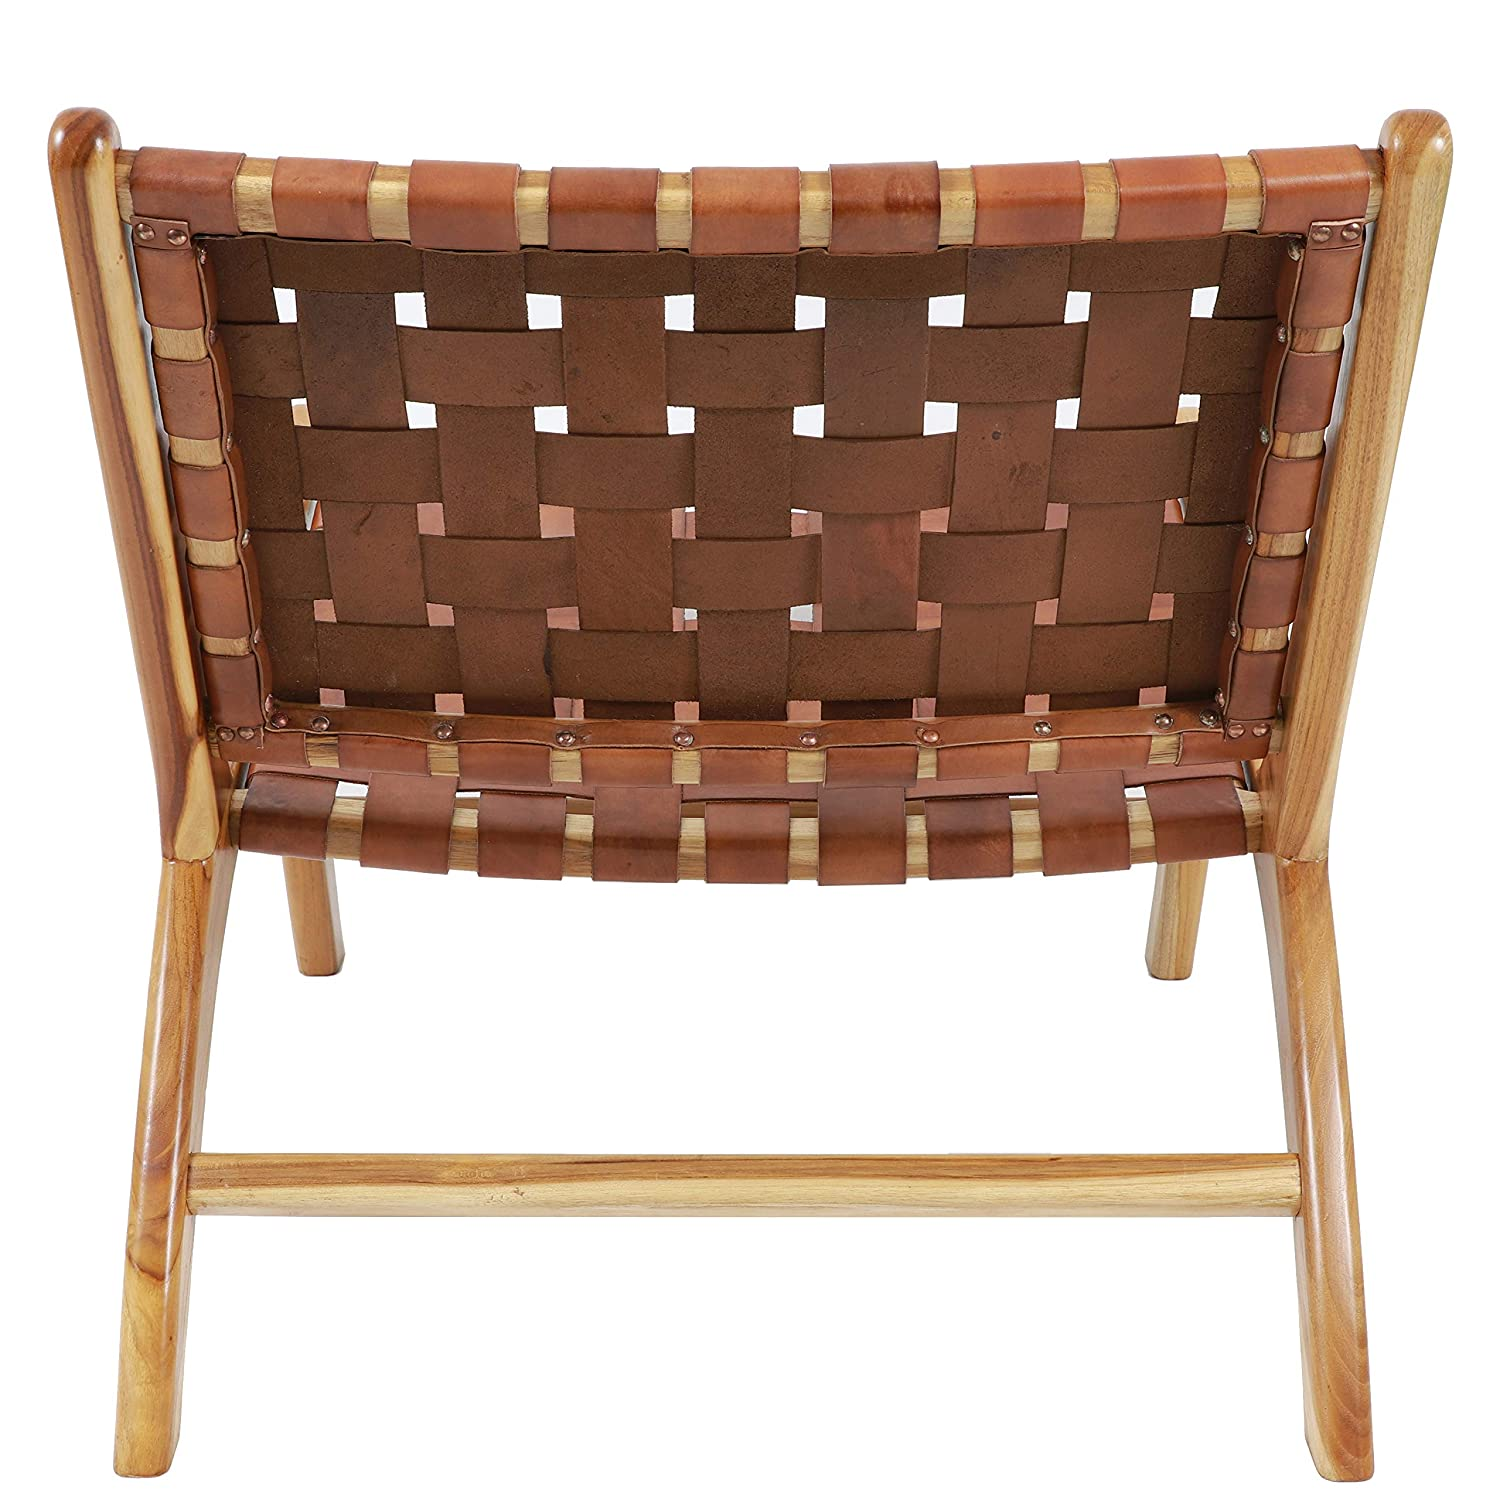 Antique Brown Decor Therapy FR8715 Roy Leather Strap Chair 27.56 H X 25.59 L X 31.10 W